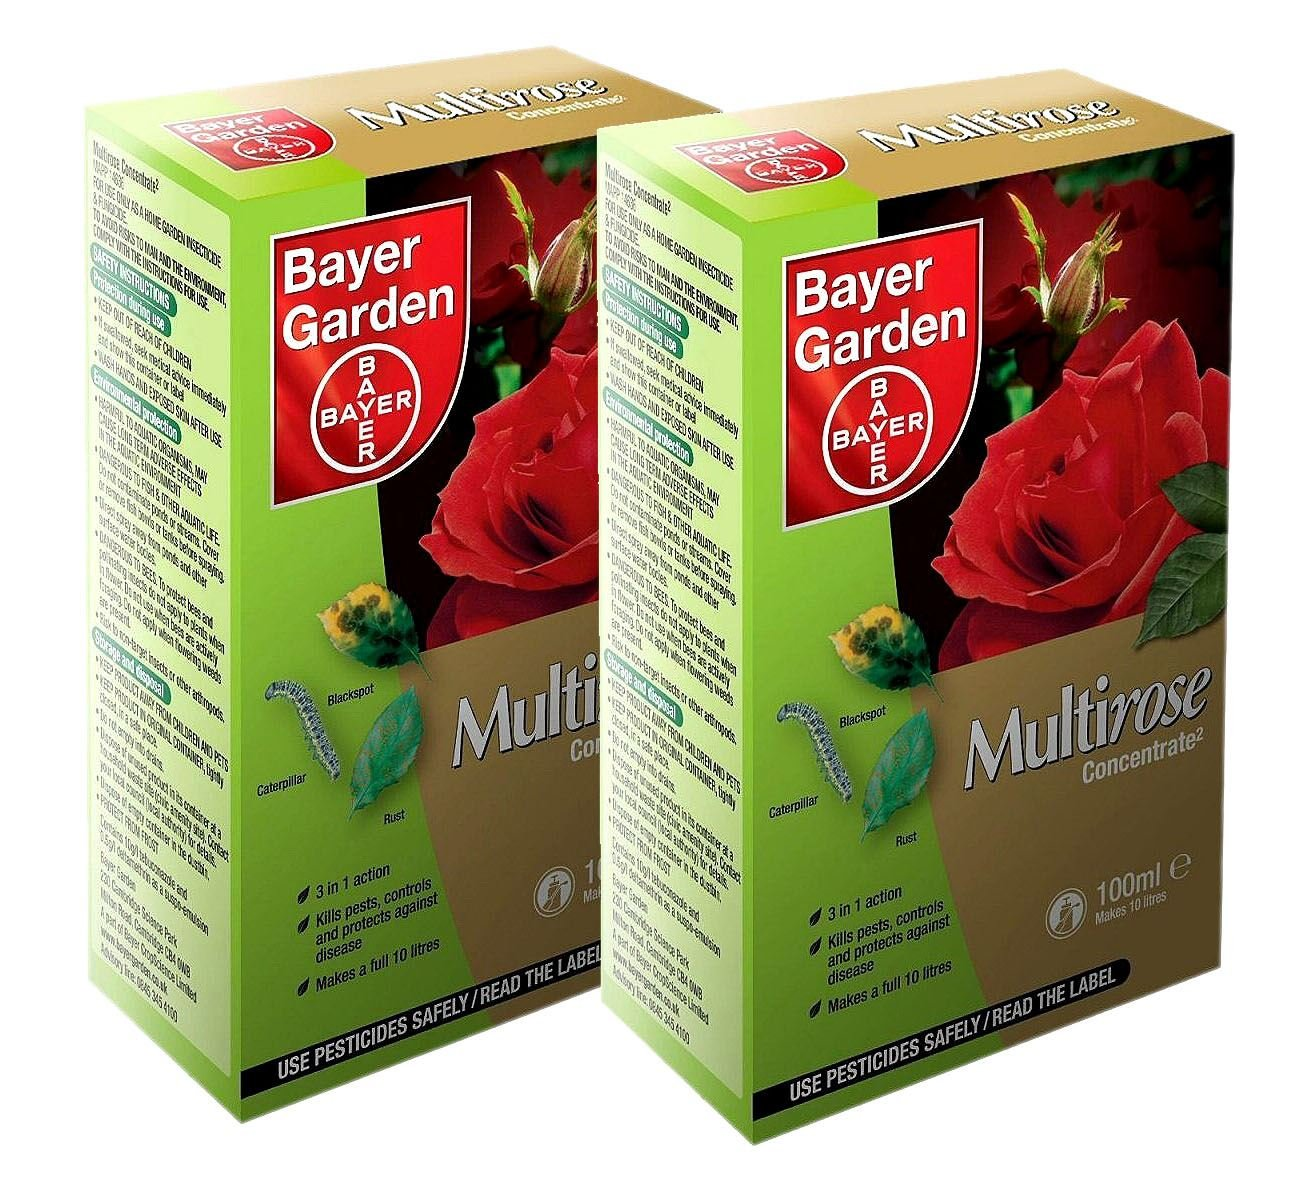 Pack of 2 Bayer Garden Multirose Concentrate 100ml